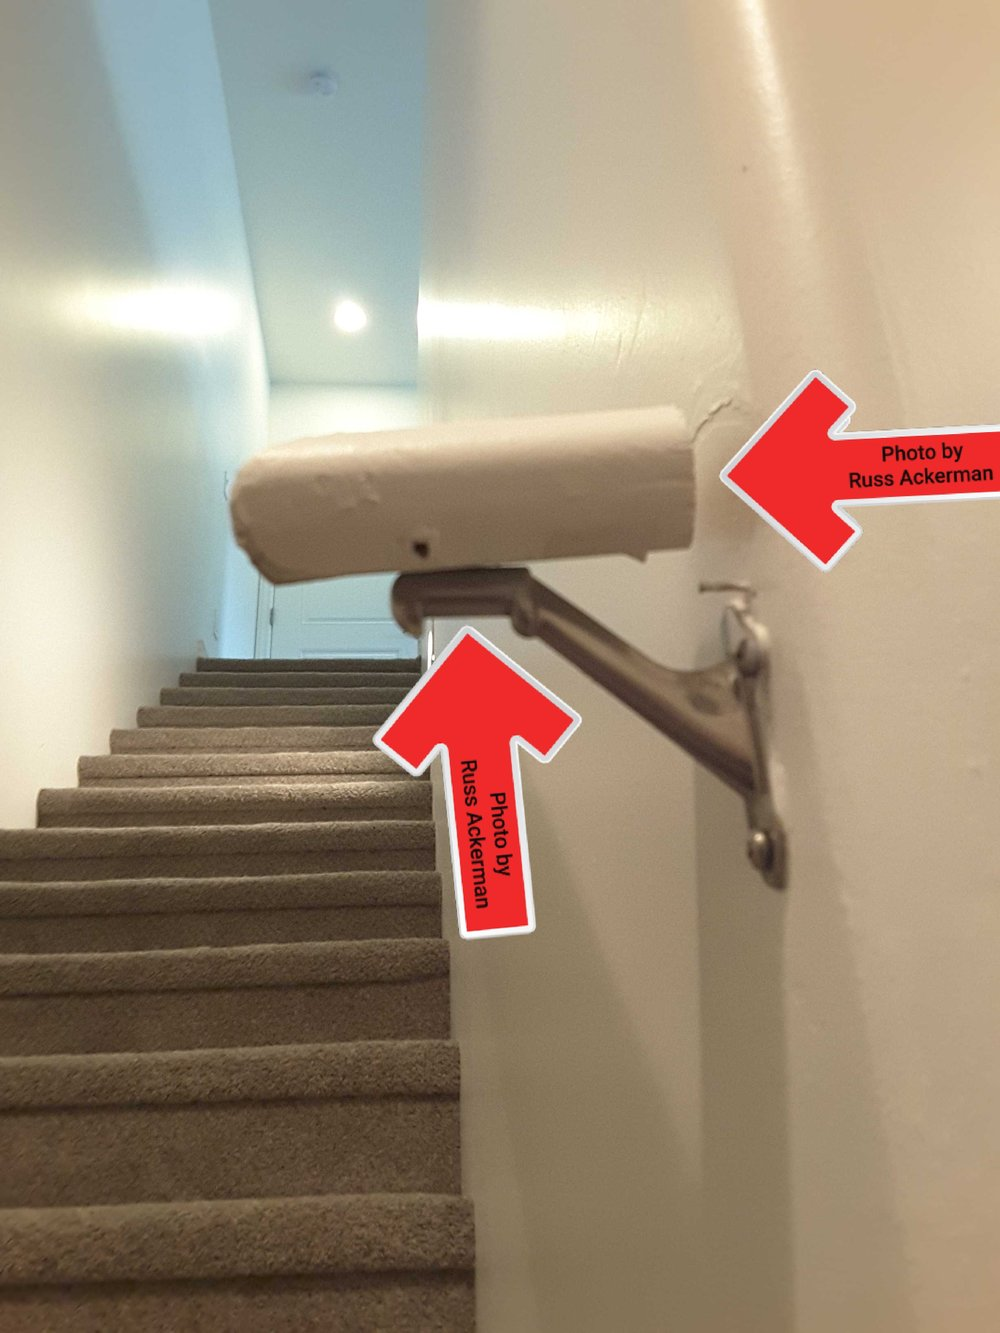 Loose basement handrail is a safety hazard. Replace the missing bracket under railing and problem solved.